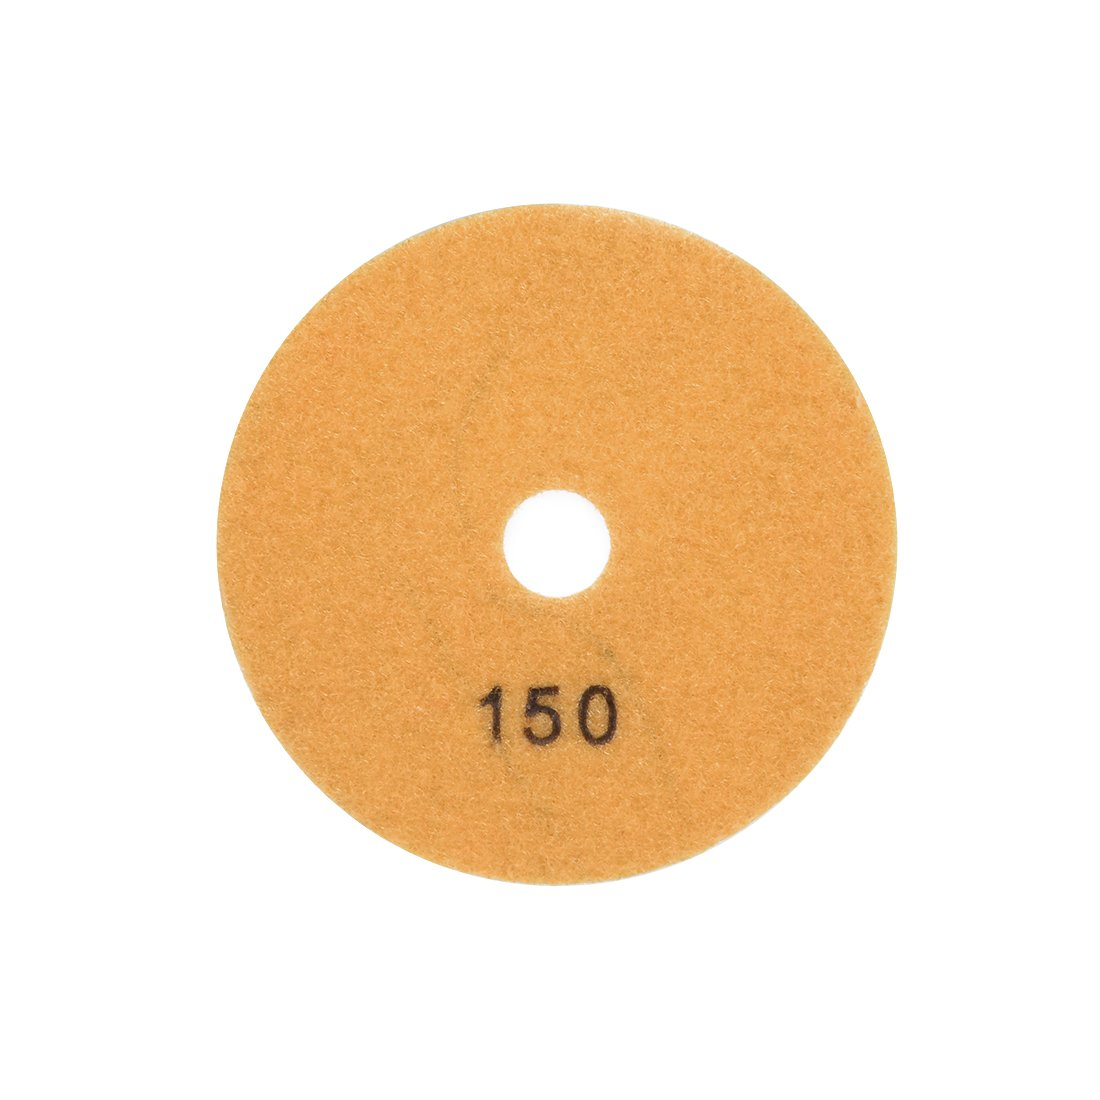 uxcell/® Diamond Polishing Sanding Grinding Pads Discs 4 Inch Grit 150 10 Pcs for Granite Concrete Stone Marble